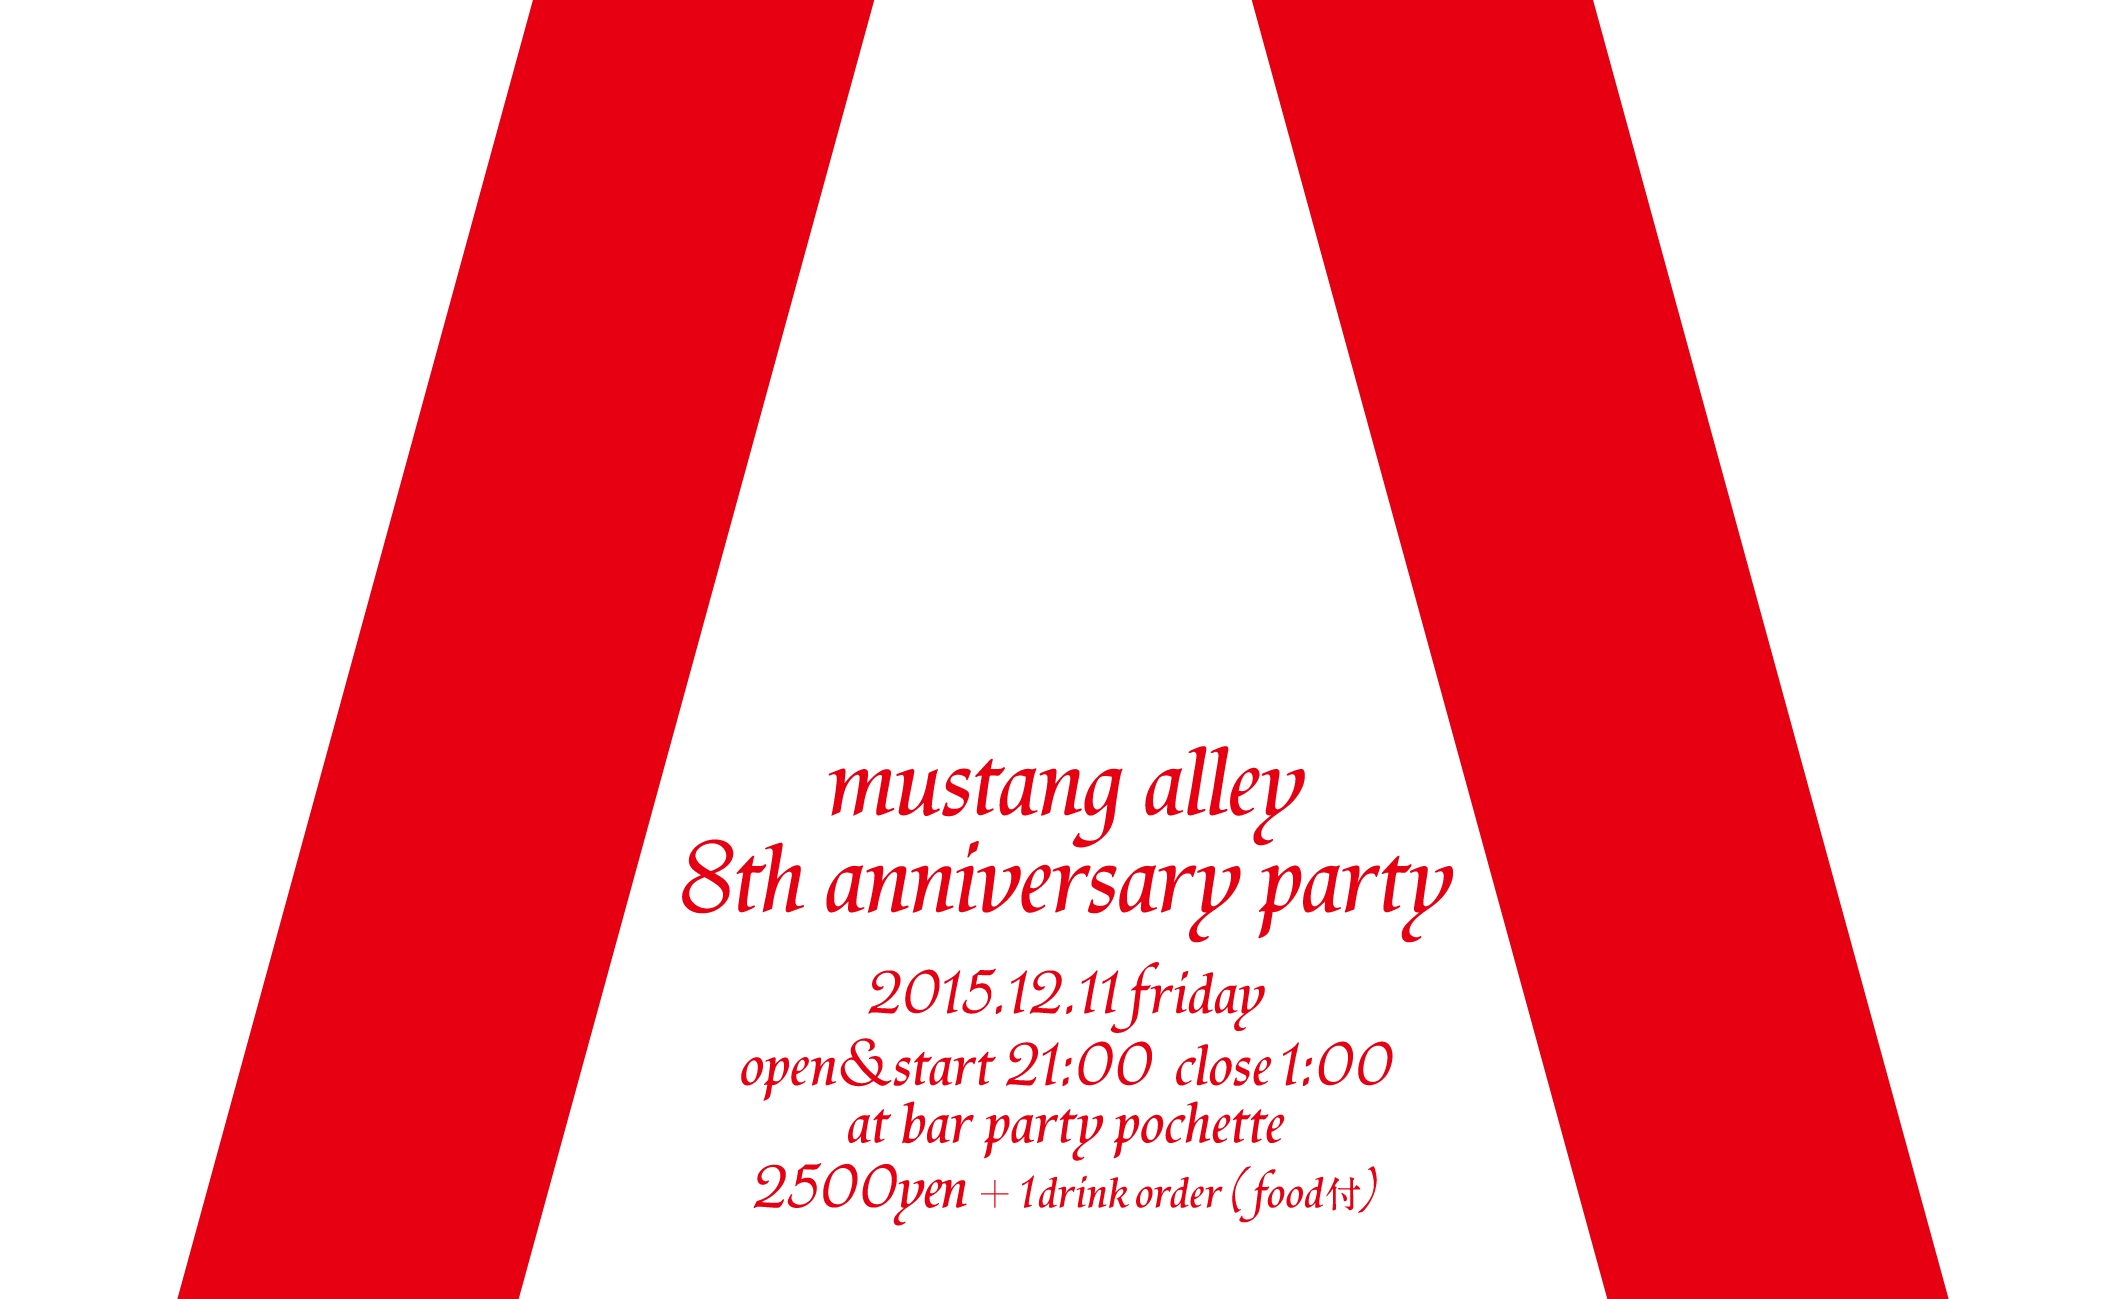 mustang alley〜8th anniversary party〜